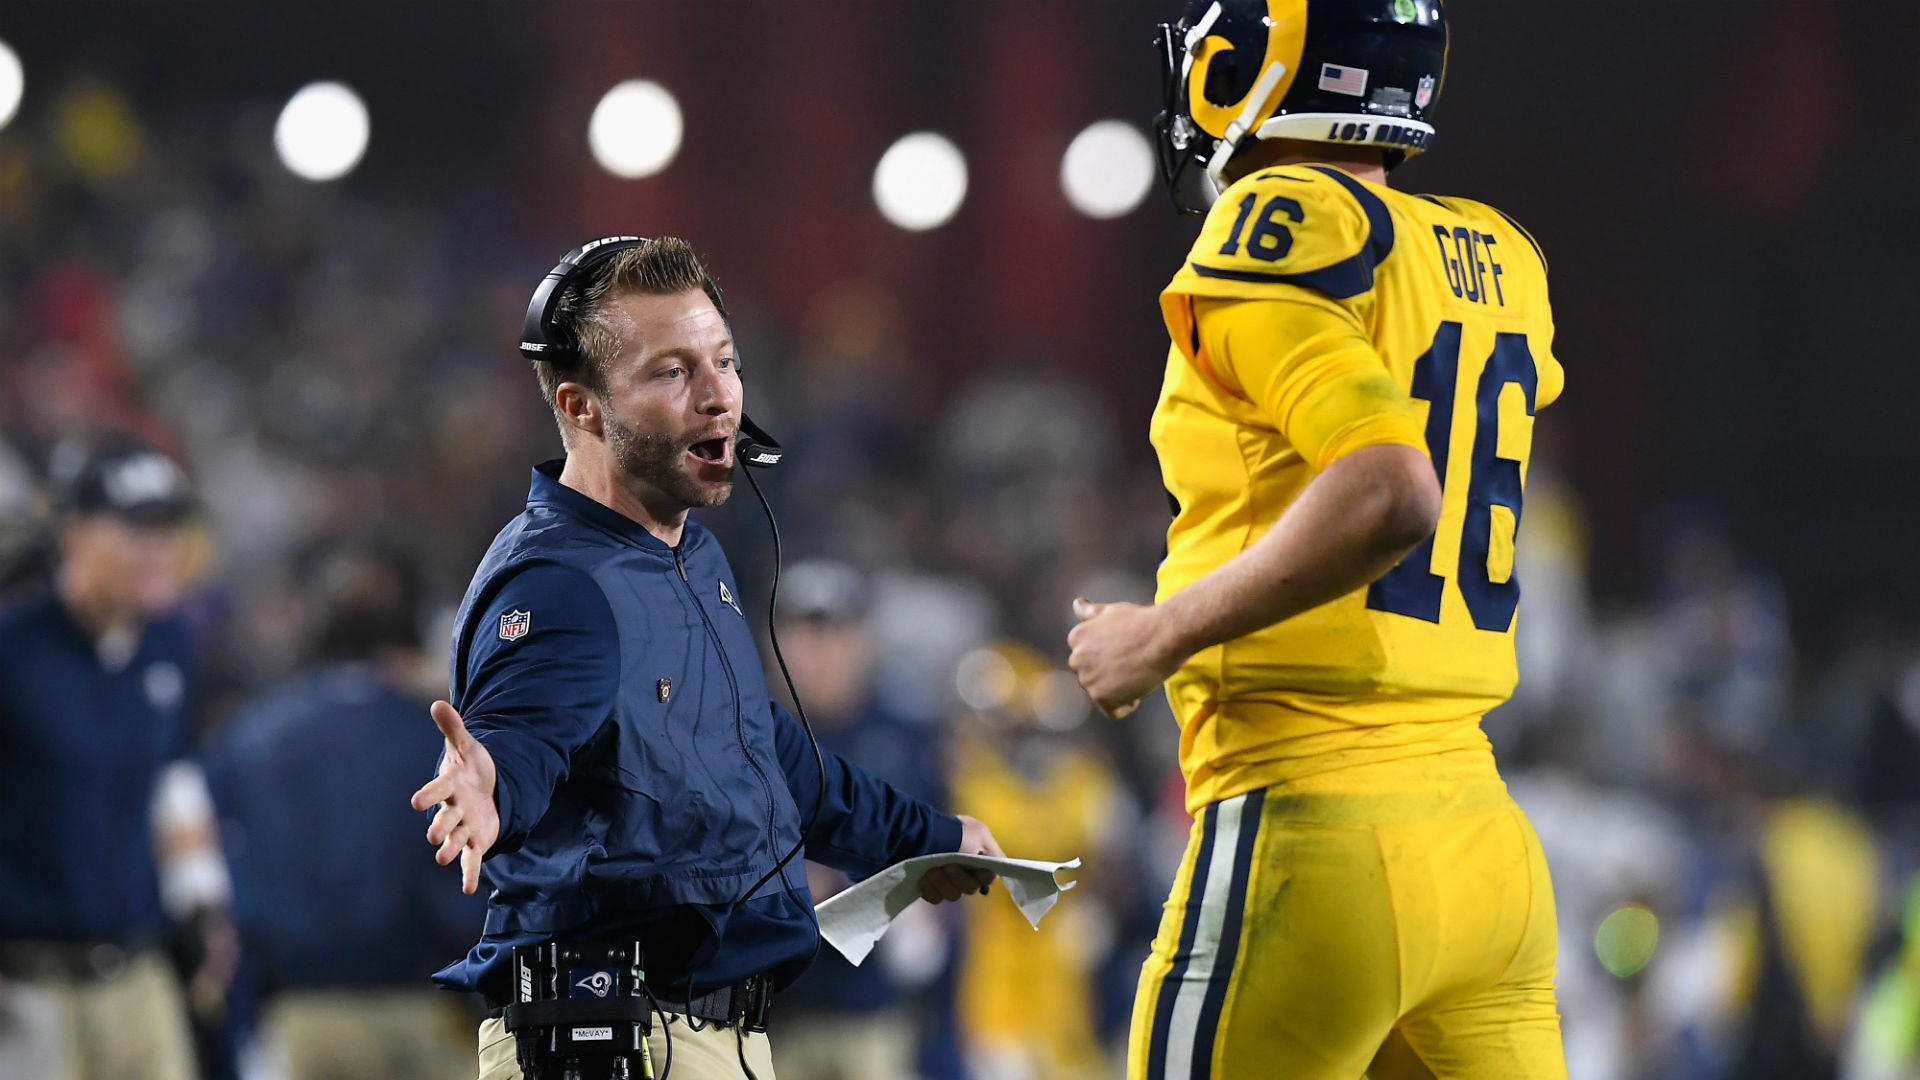 Watch: Rams meet with shooting victims' families after epic win